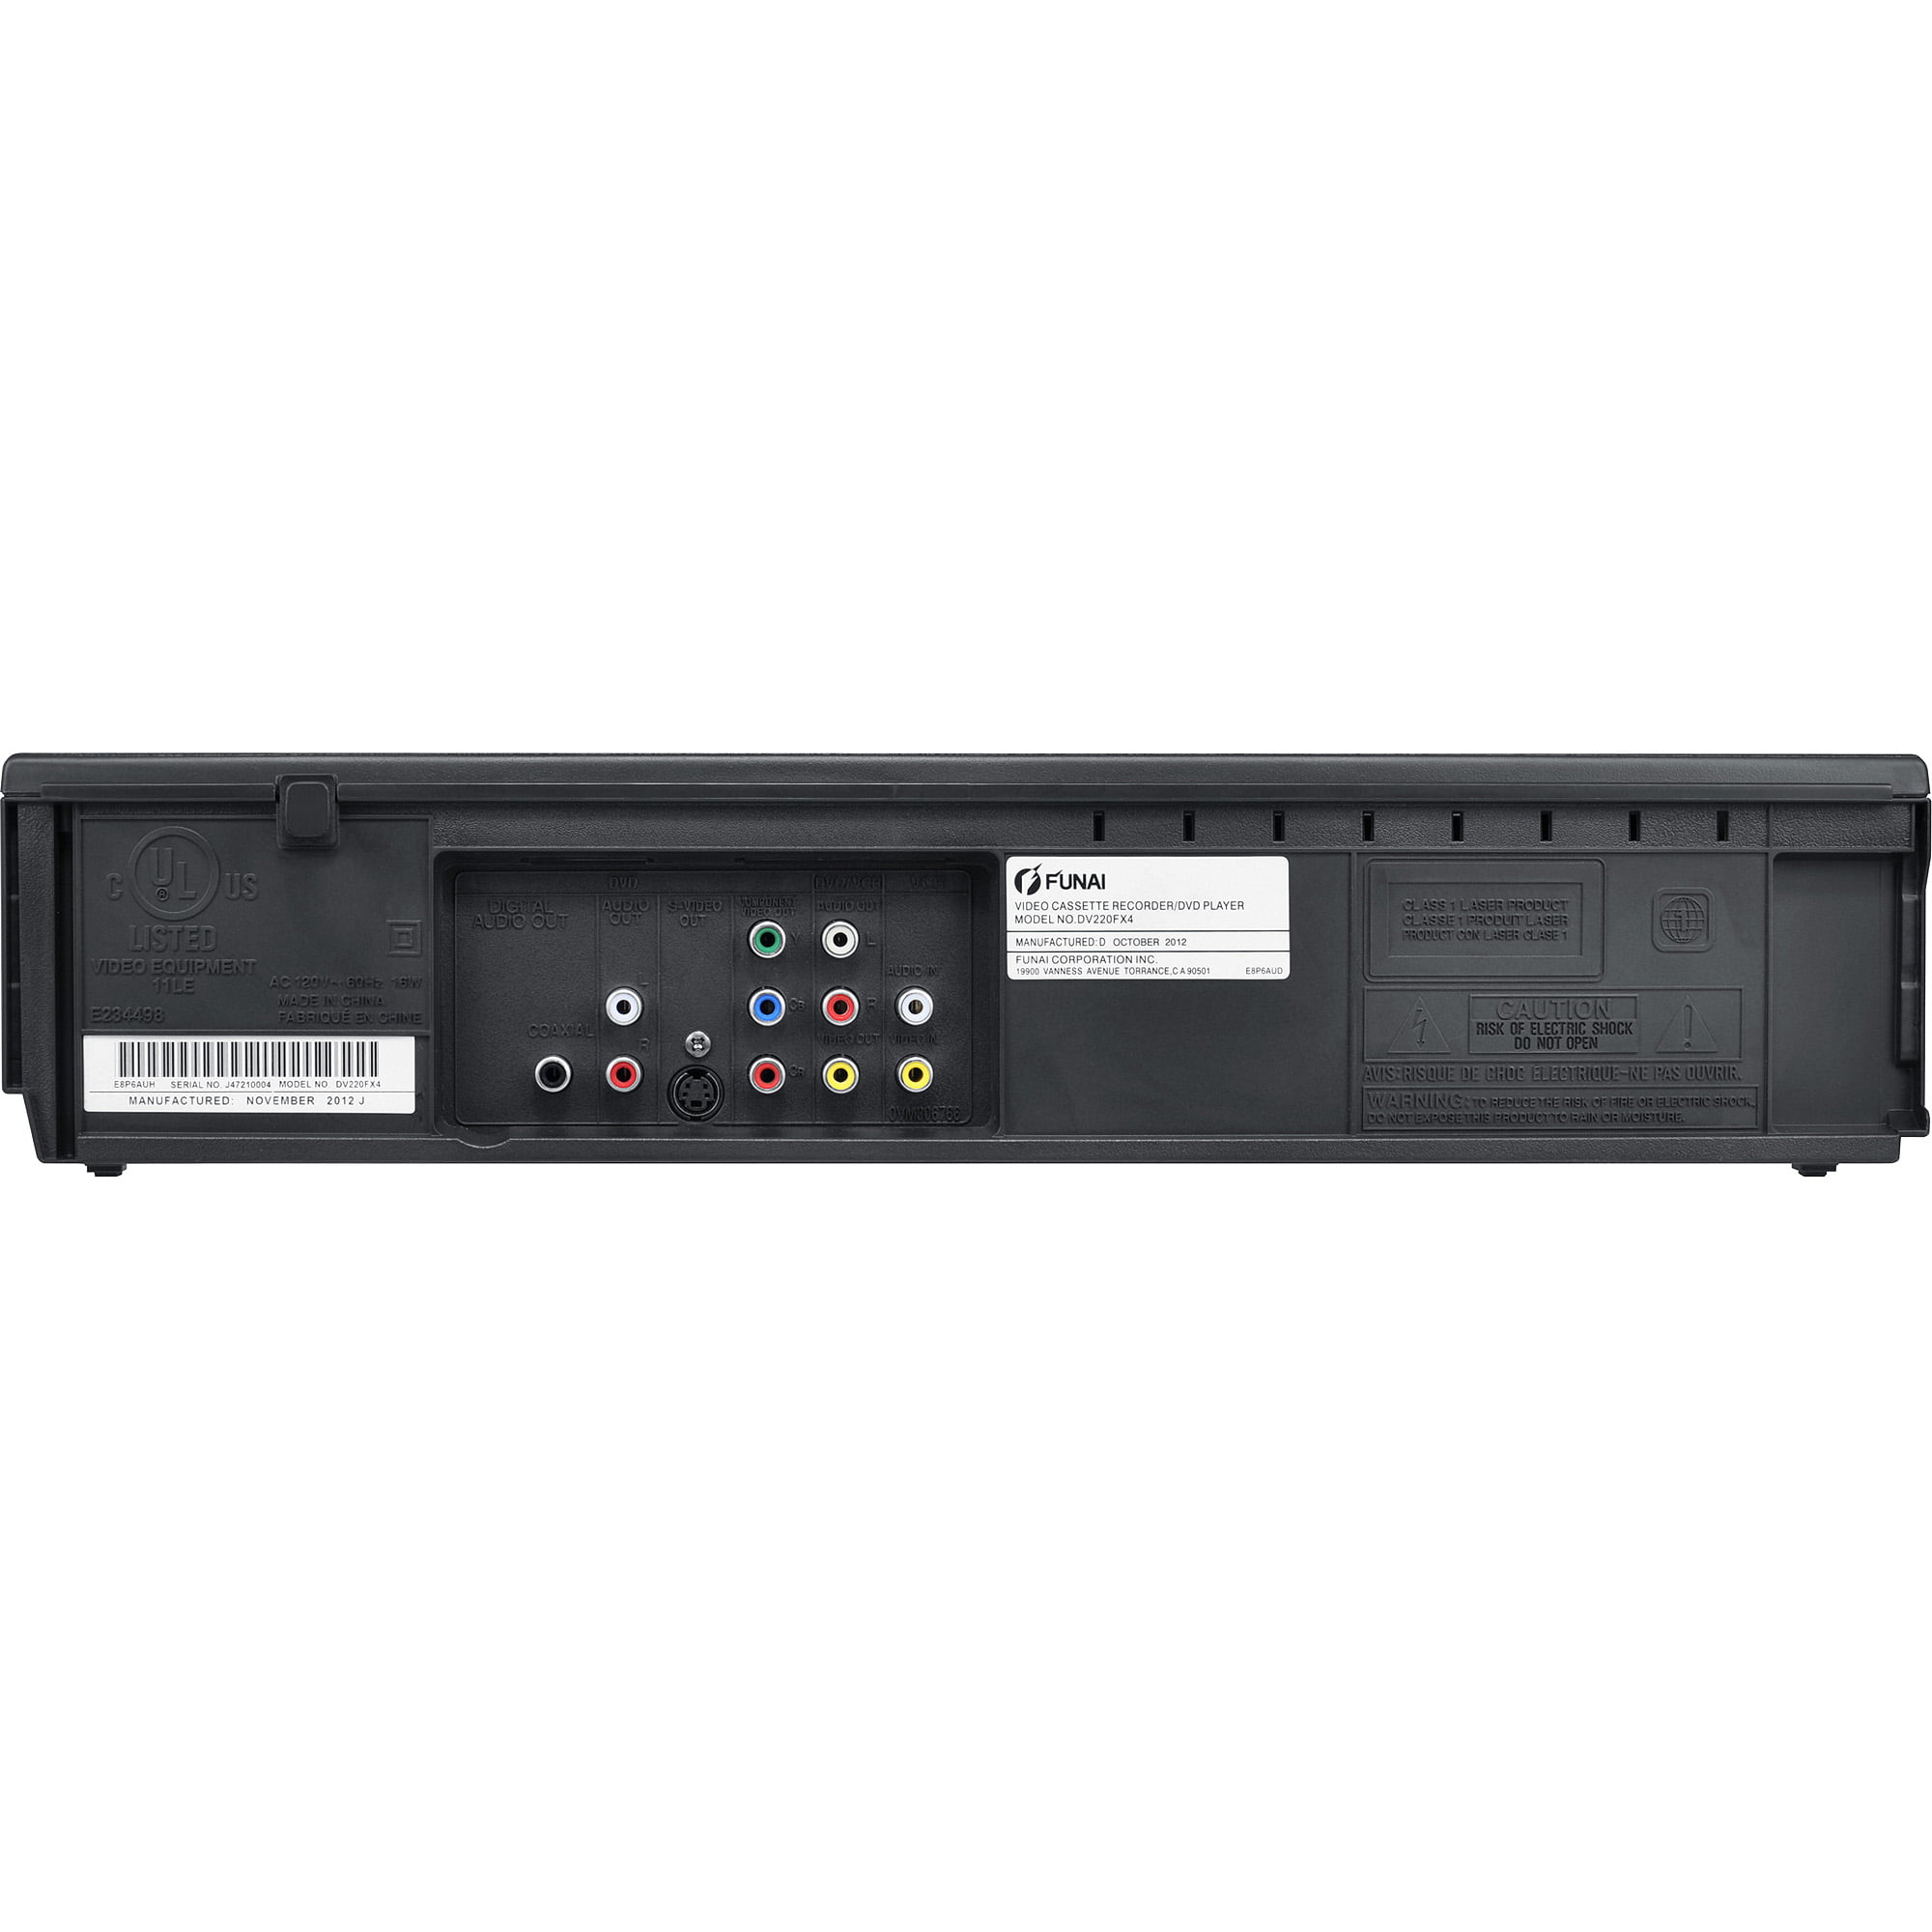 Funai DV220FX4 DVD Player VCR by Funai Corporation